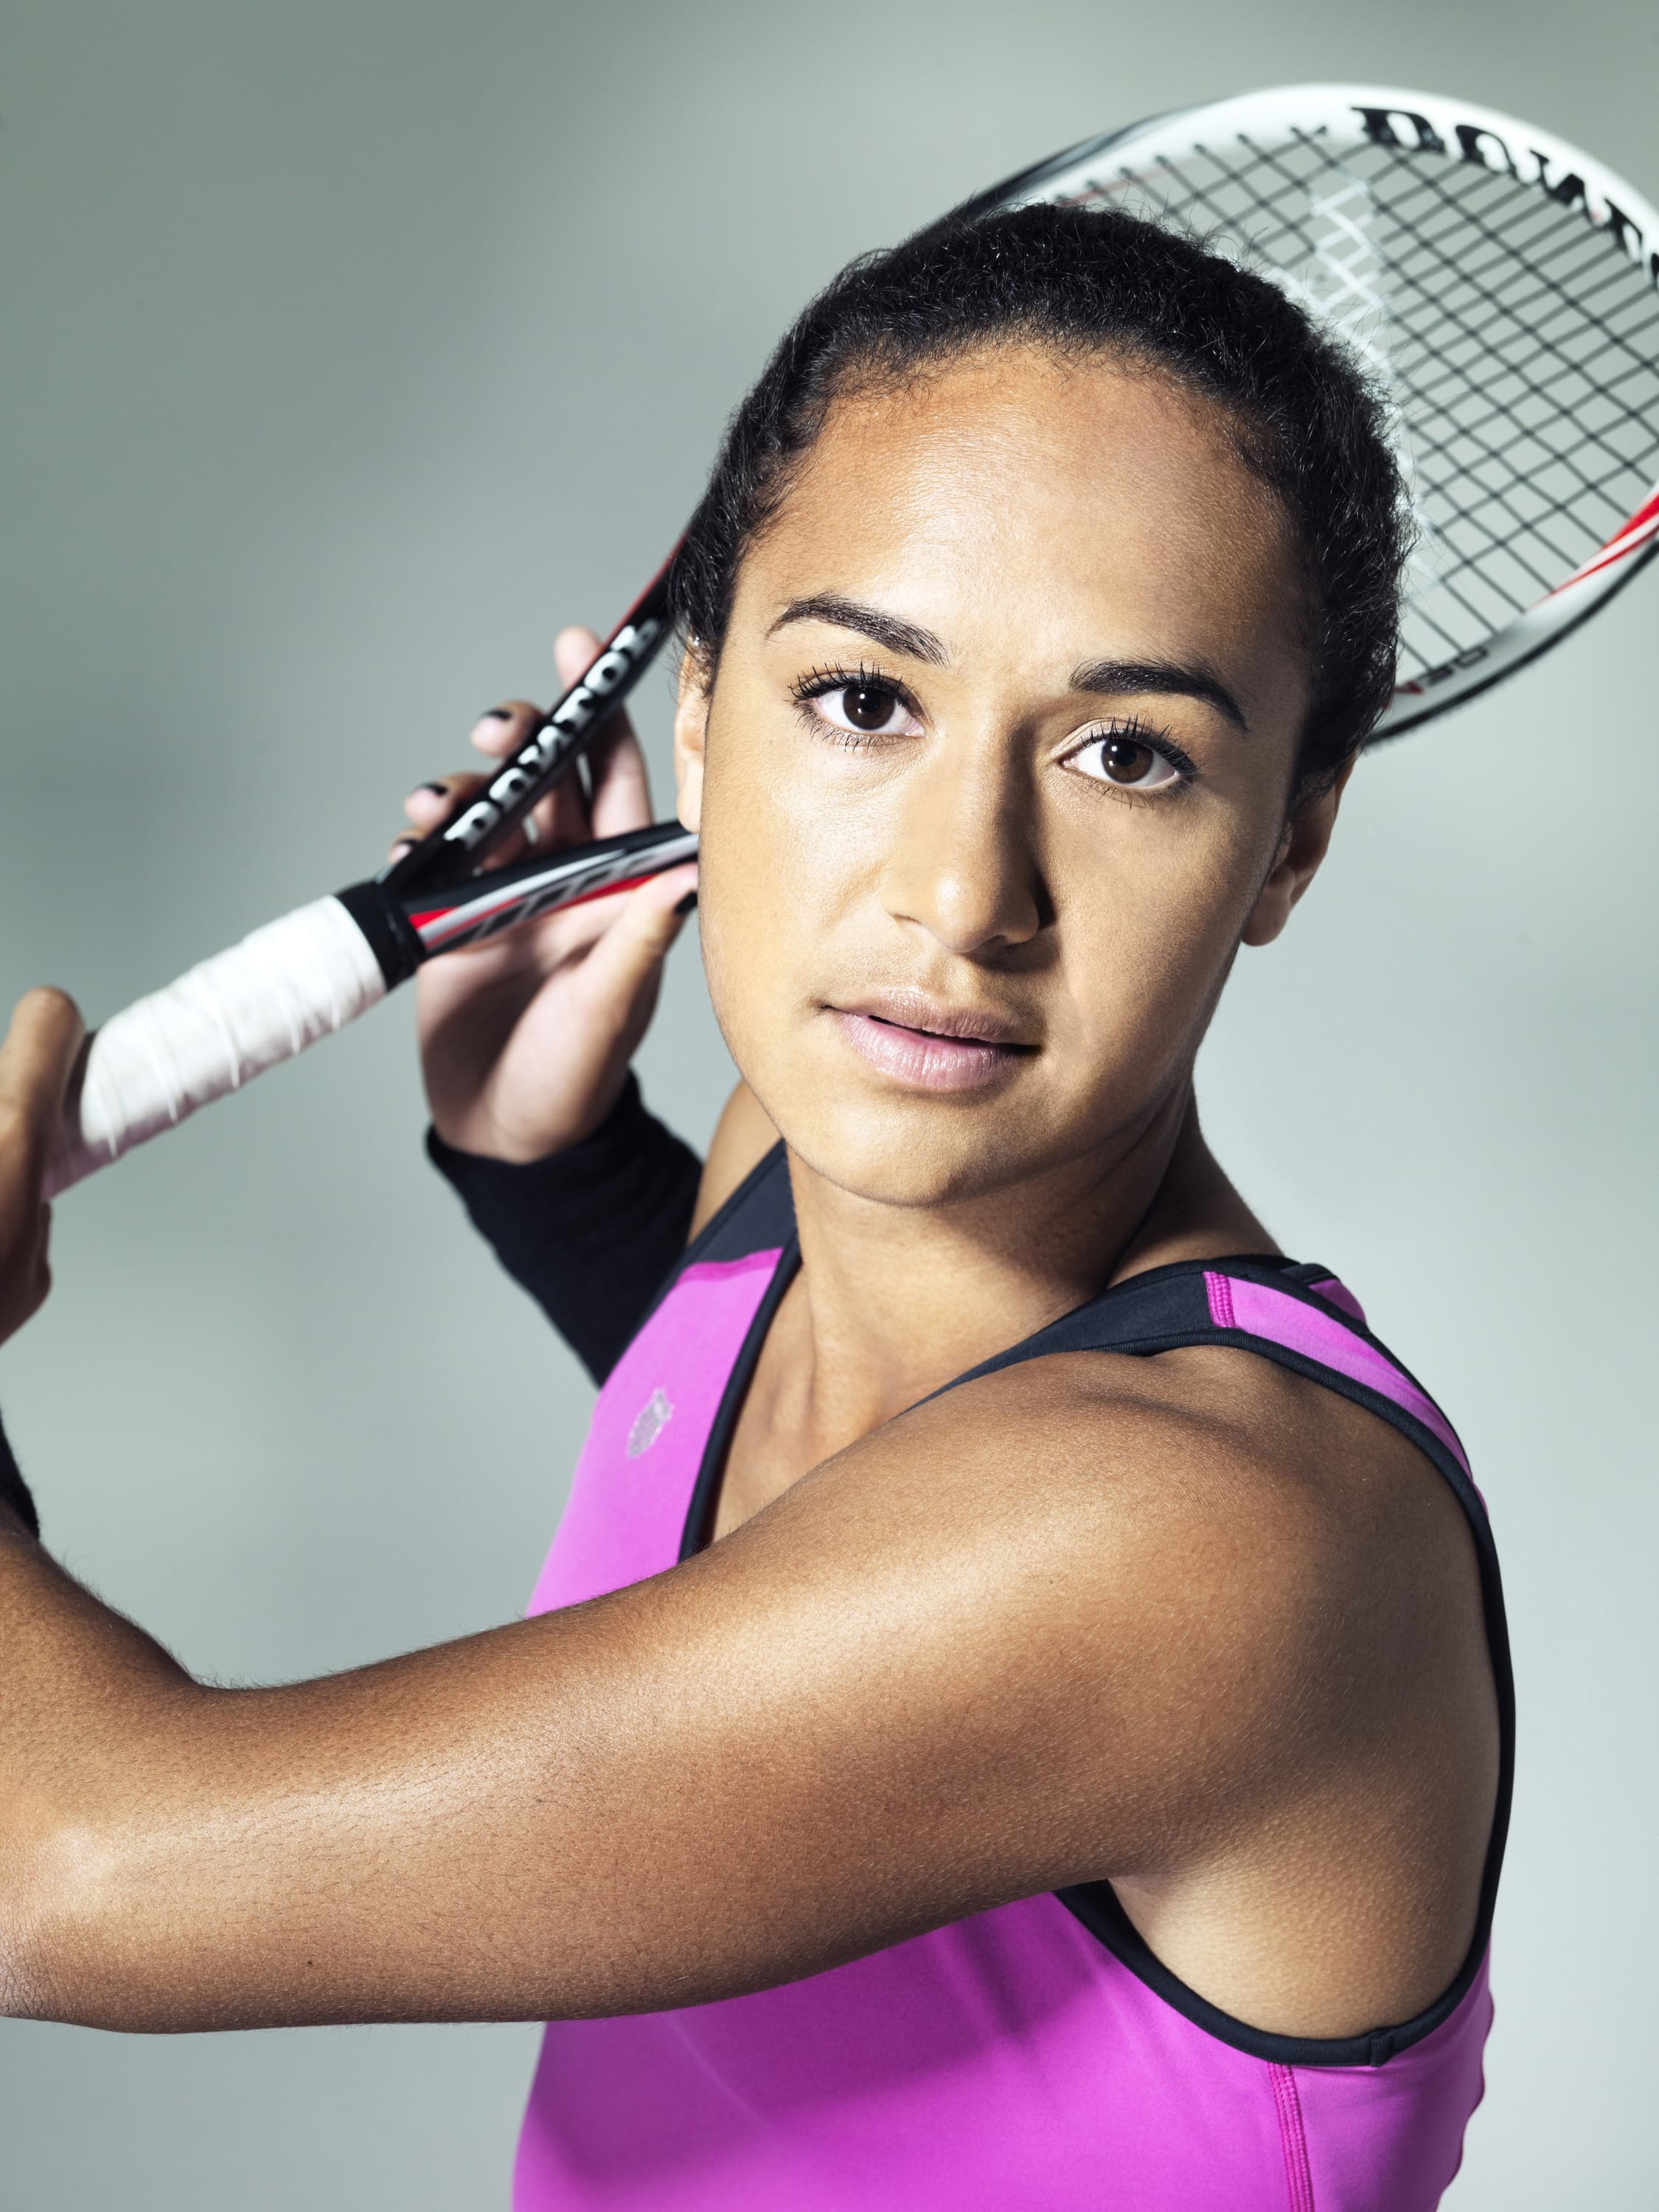 10+ Tennis player Heather Watson images, wallpapers, High ...